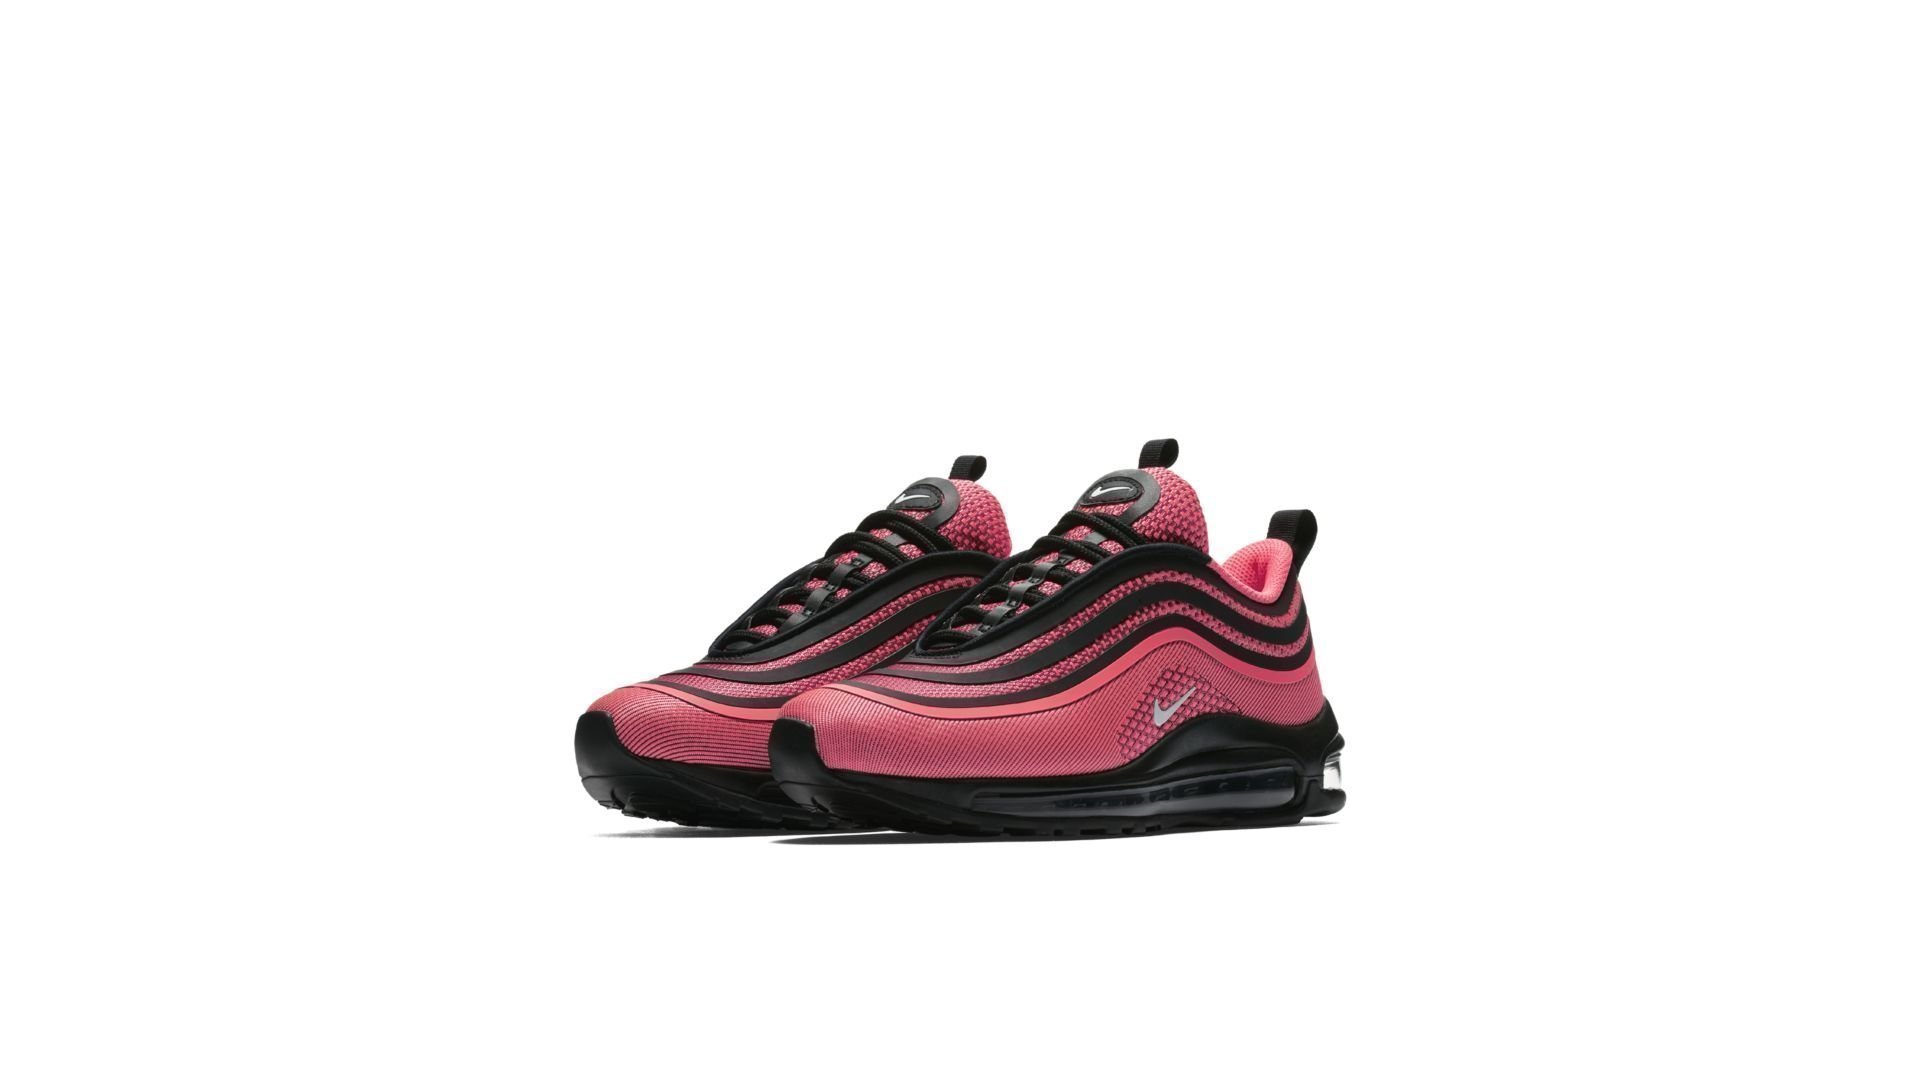 Nike Air Max 97 Ultra 17 Racer Pink (917999-001)